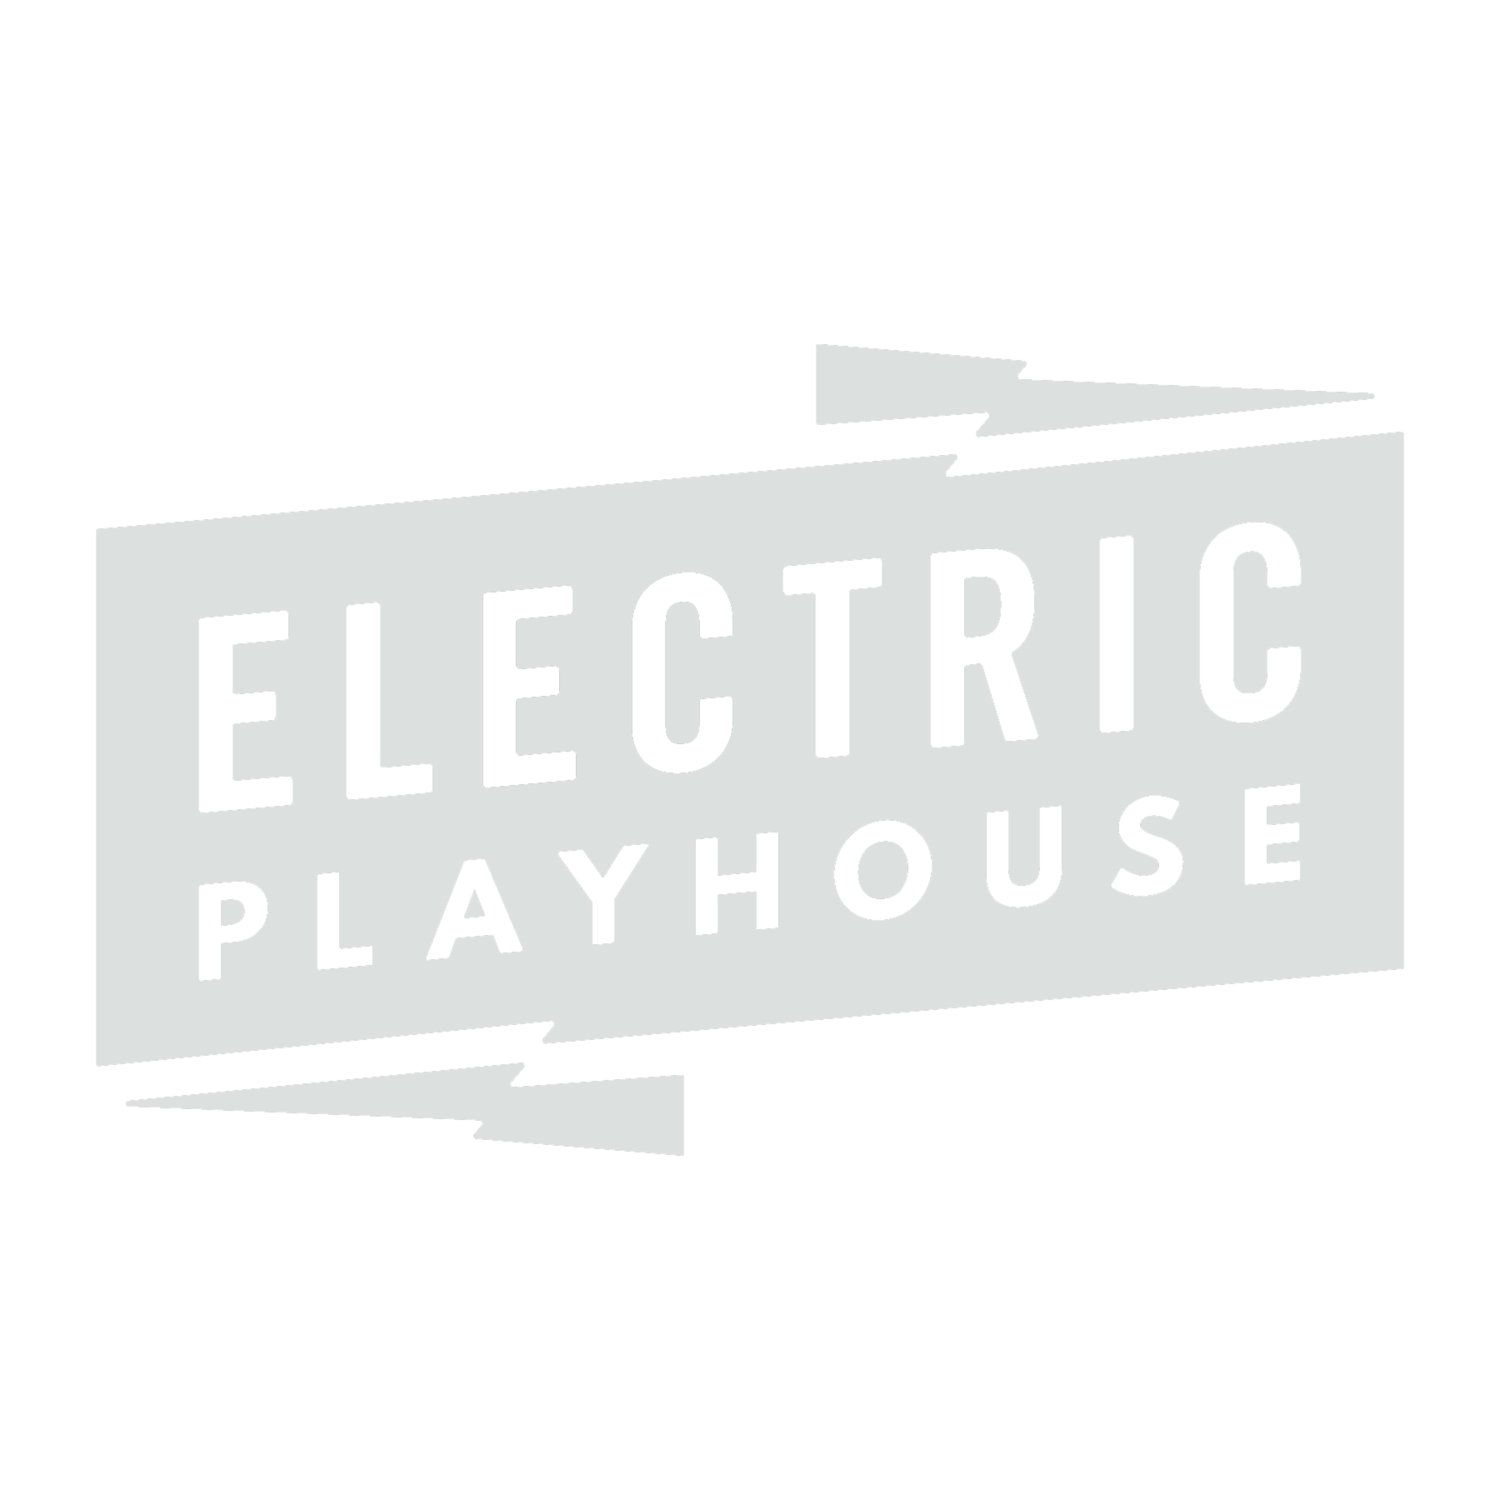 Electric Playhouse